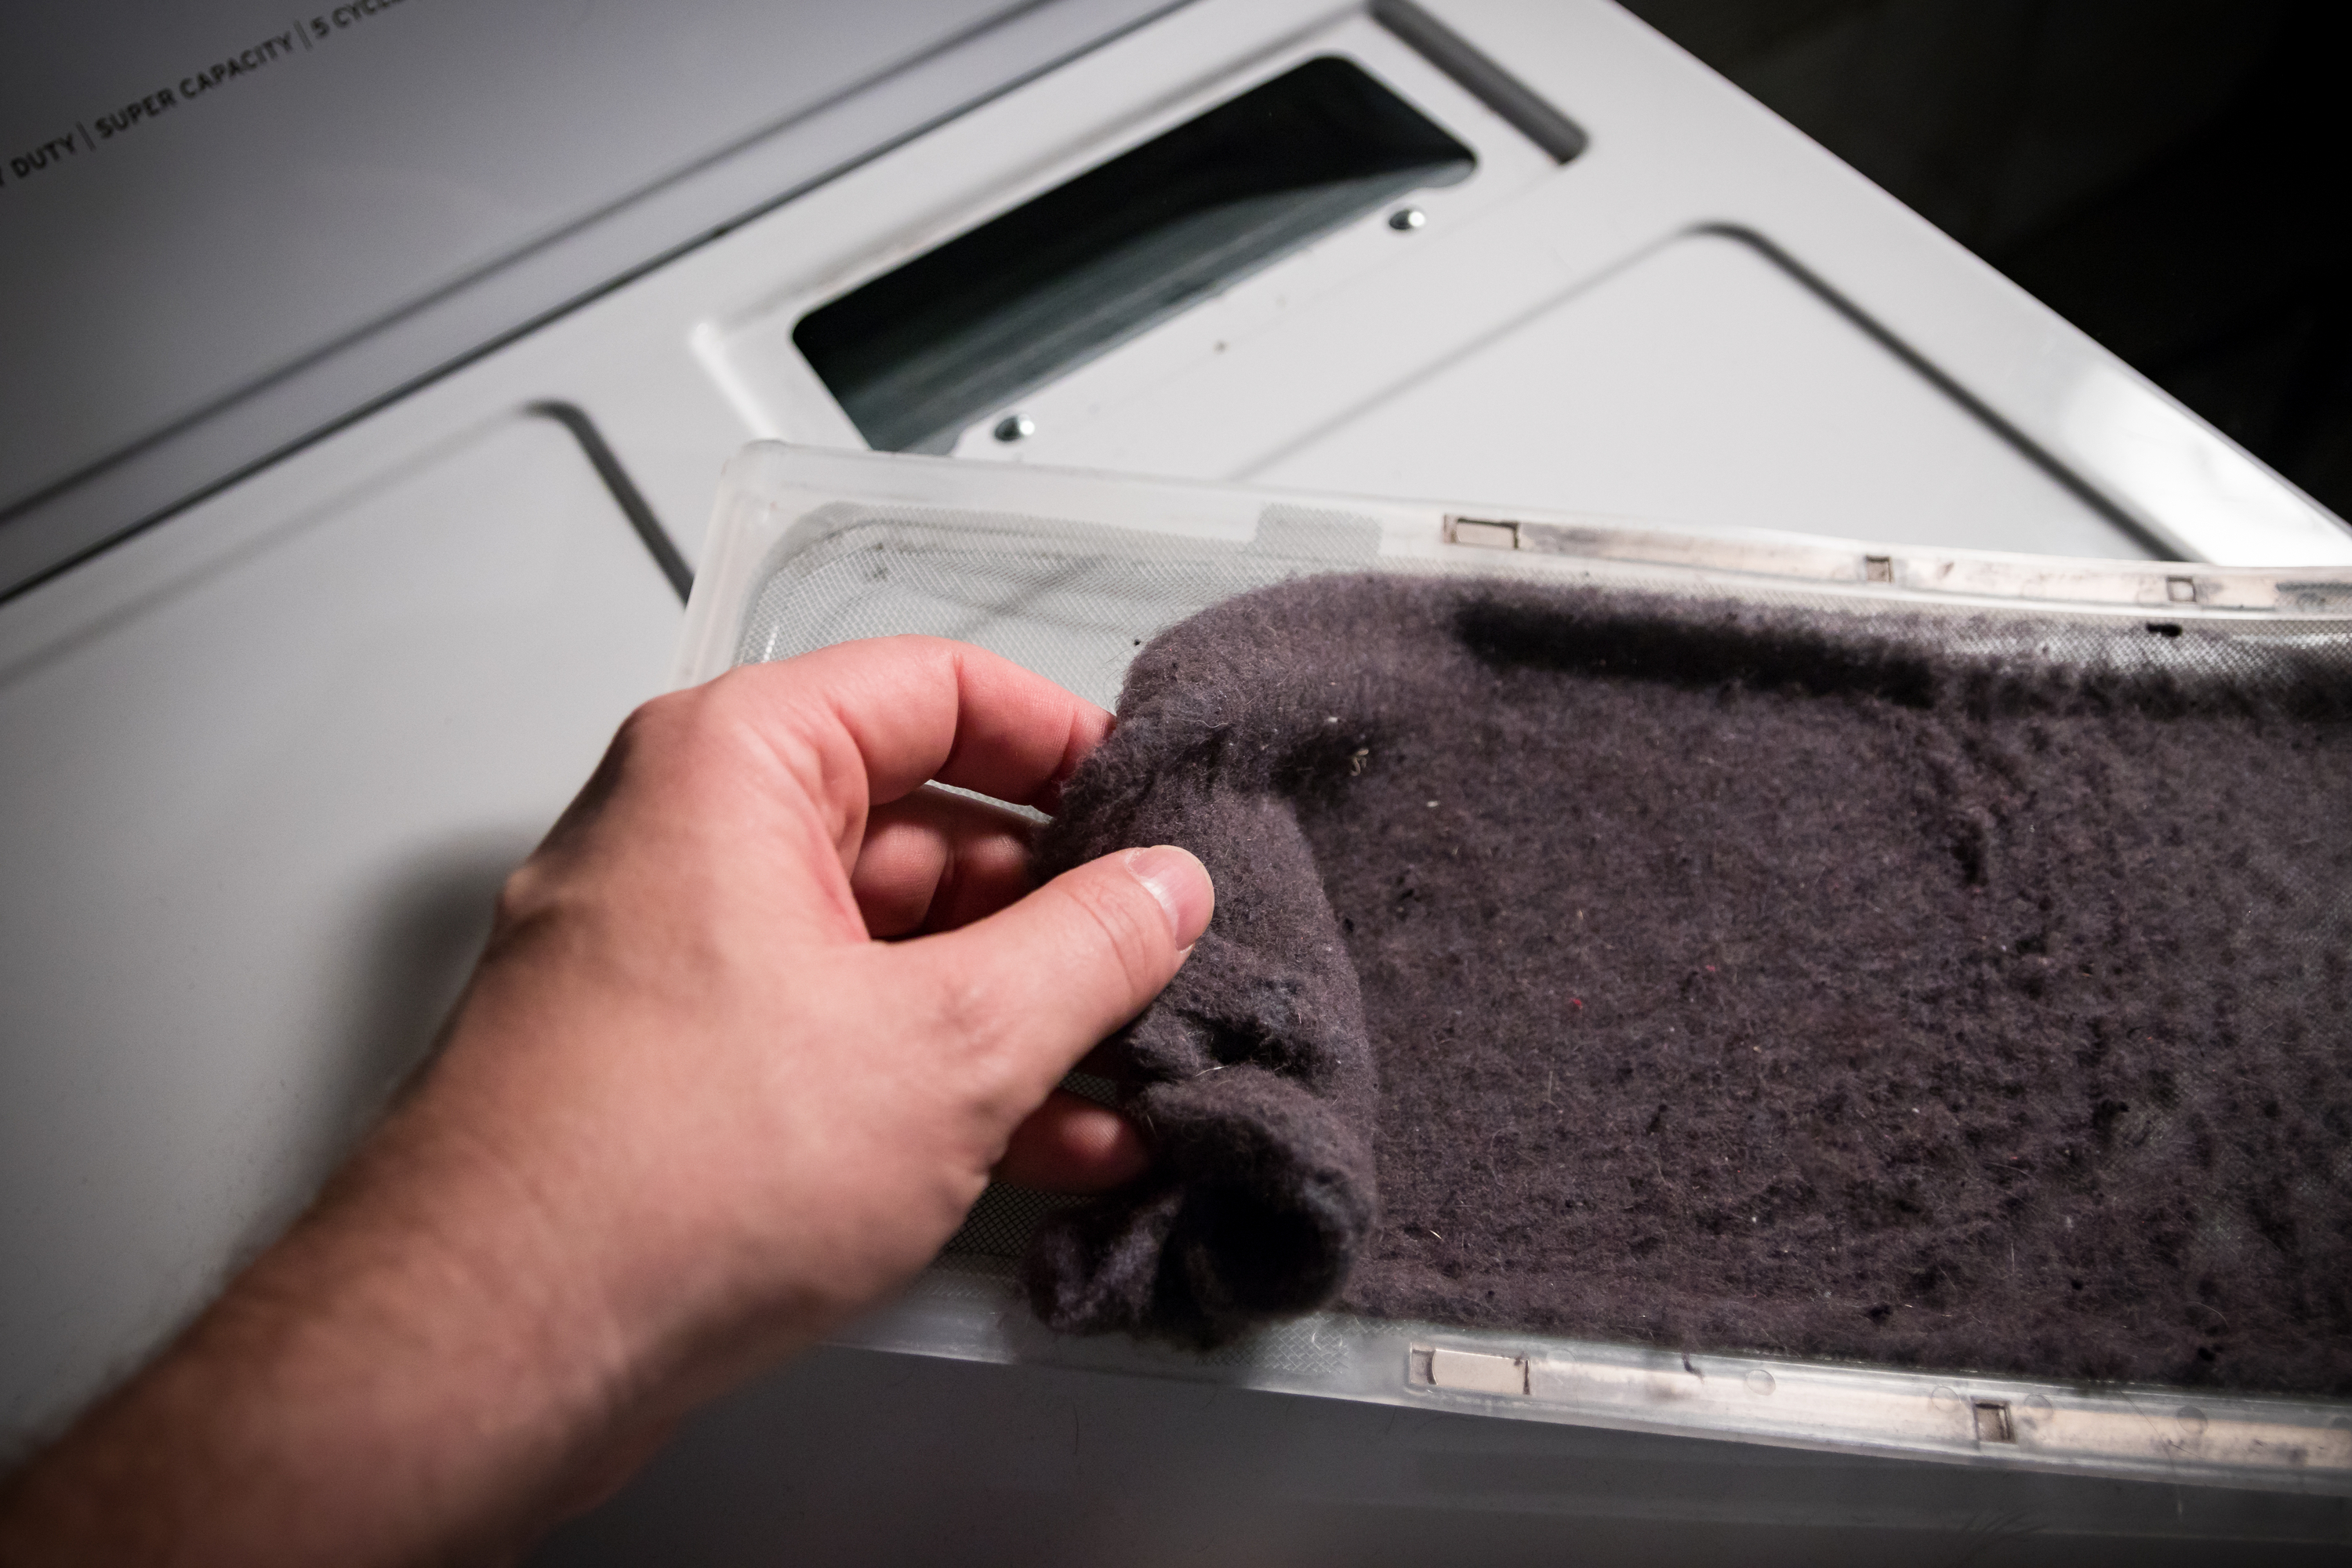 Did you know that you can cause a house fire if you don't clean out your dryer vents? Here's how to clean your dryer vent like a pro and help keep you and your family safe.